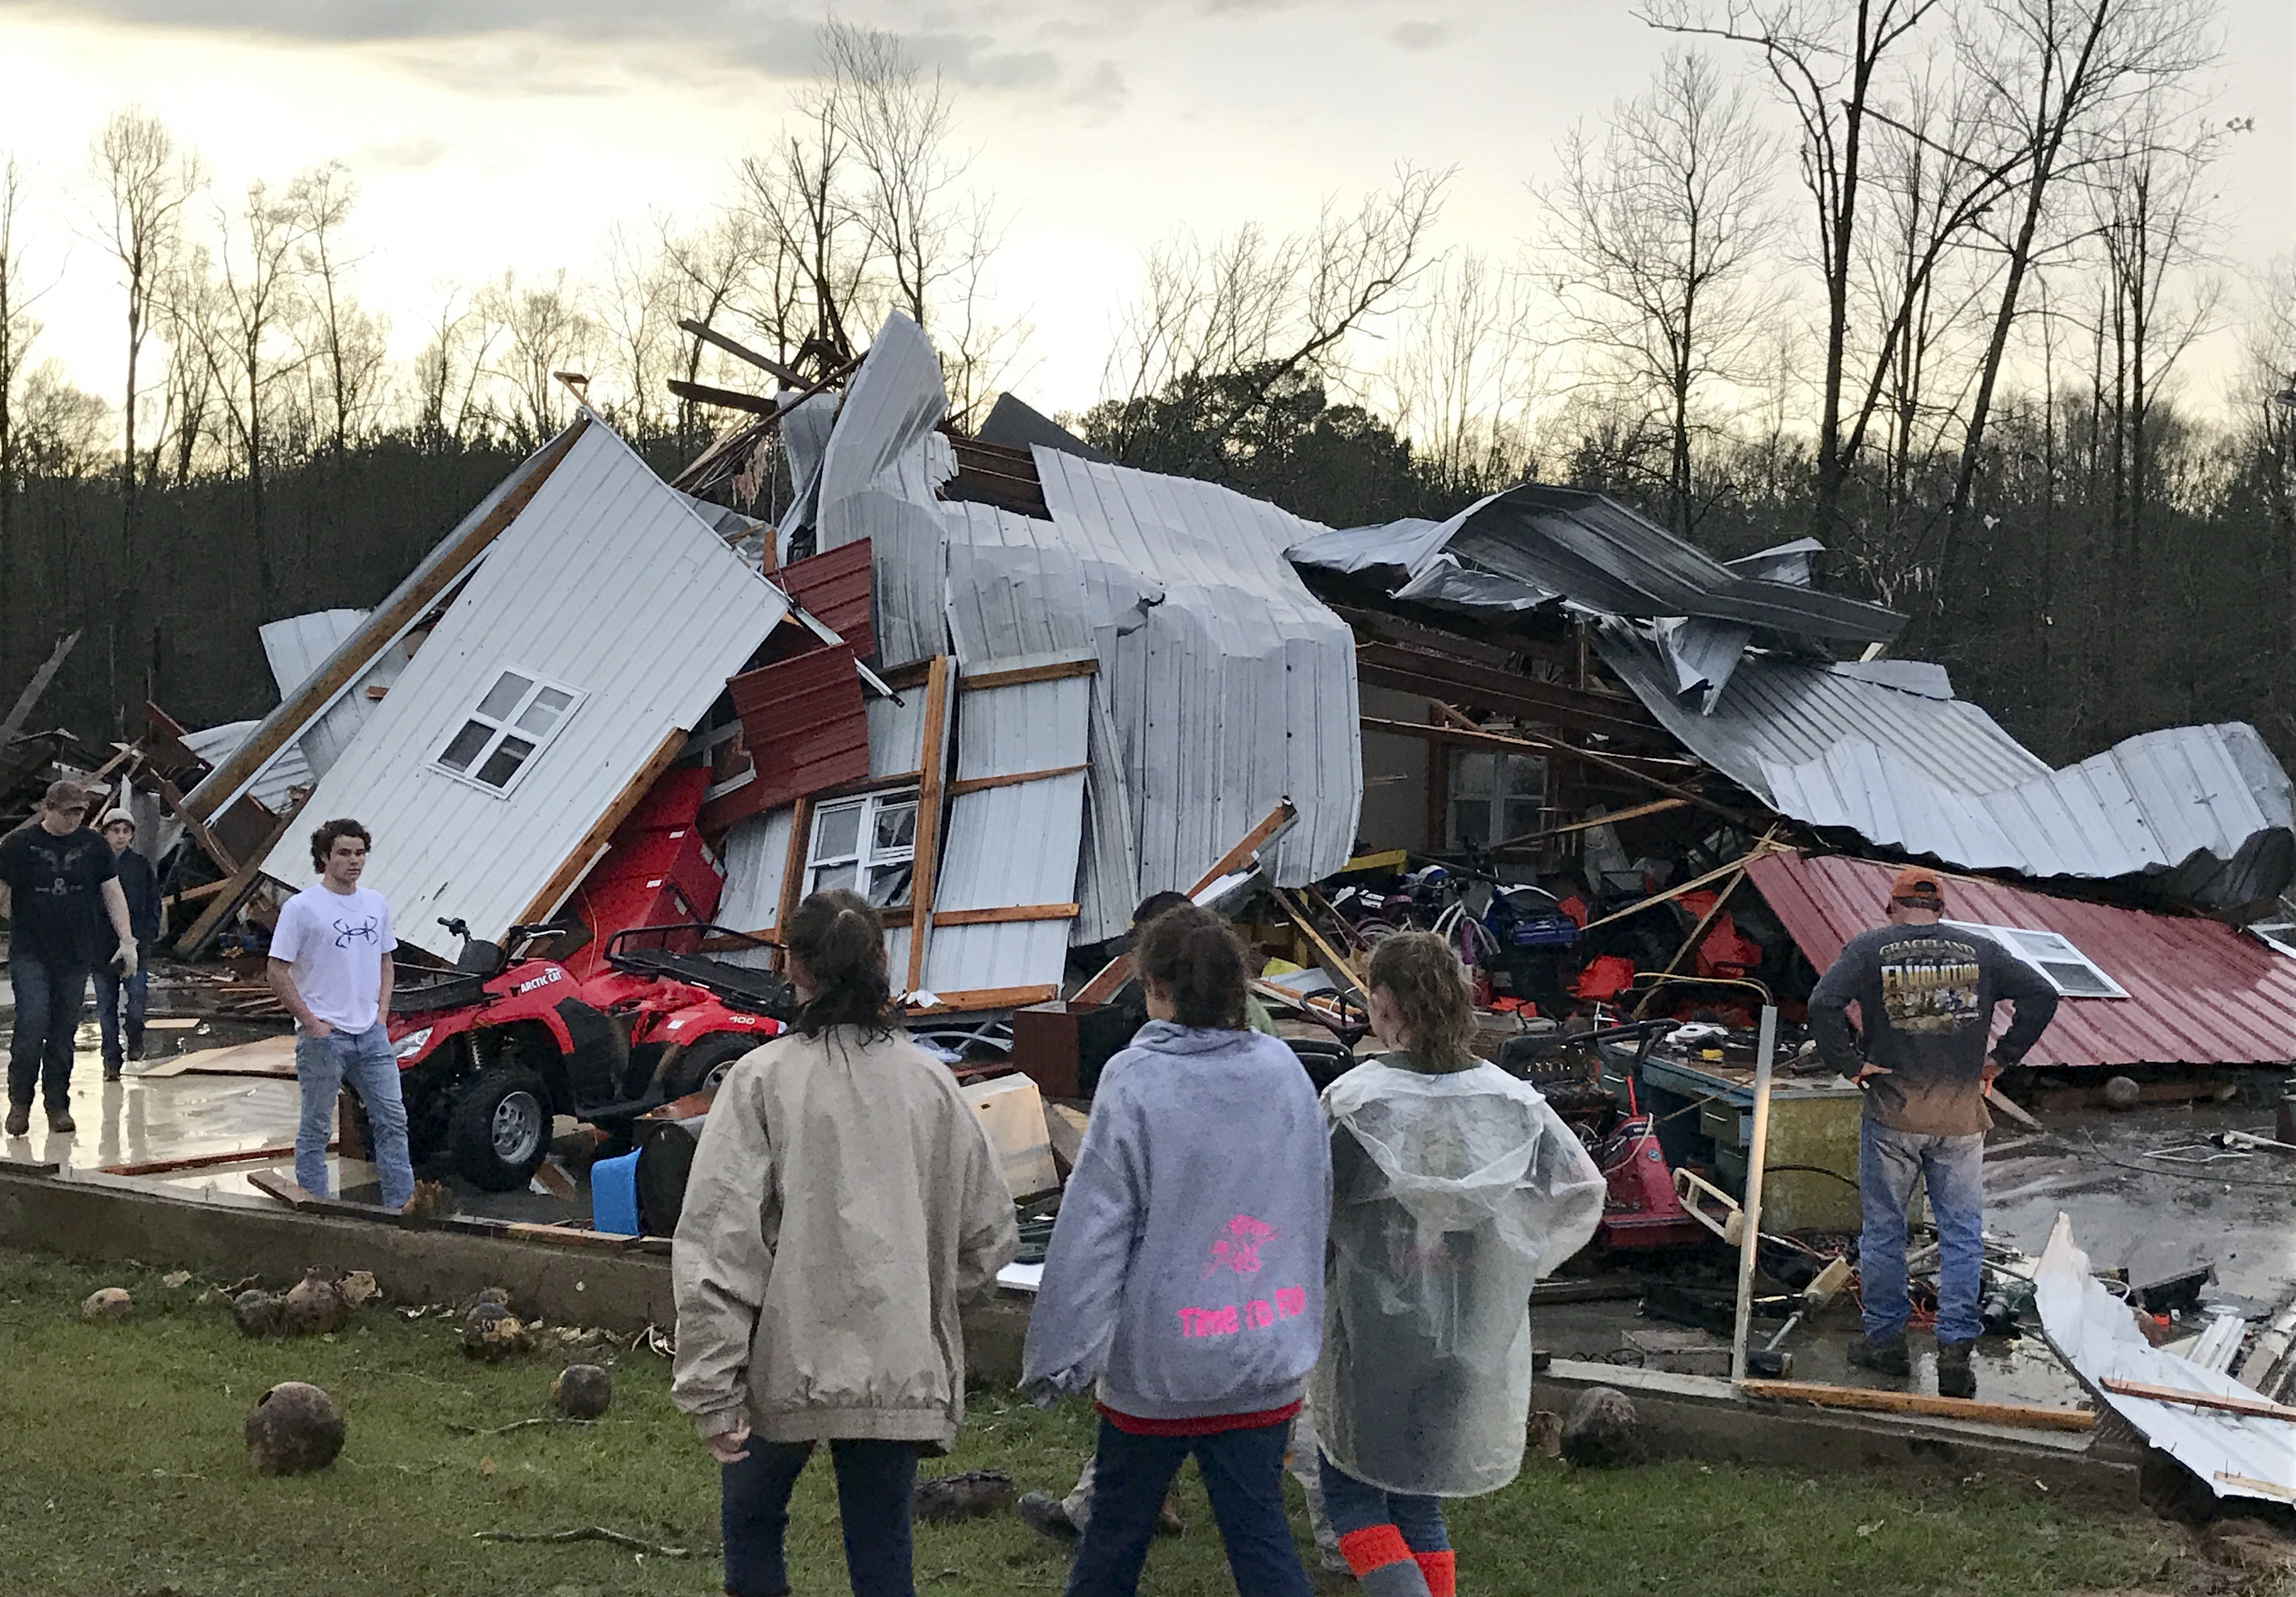 People examine a barn owned by the Miller family that was destroyed during a storm south of Mount Olive, Miss., on Jan. 2, 2017. (Ryan Moore/WDAM-TV via AP)